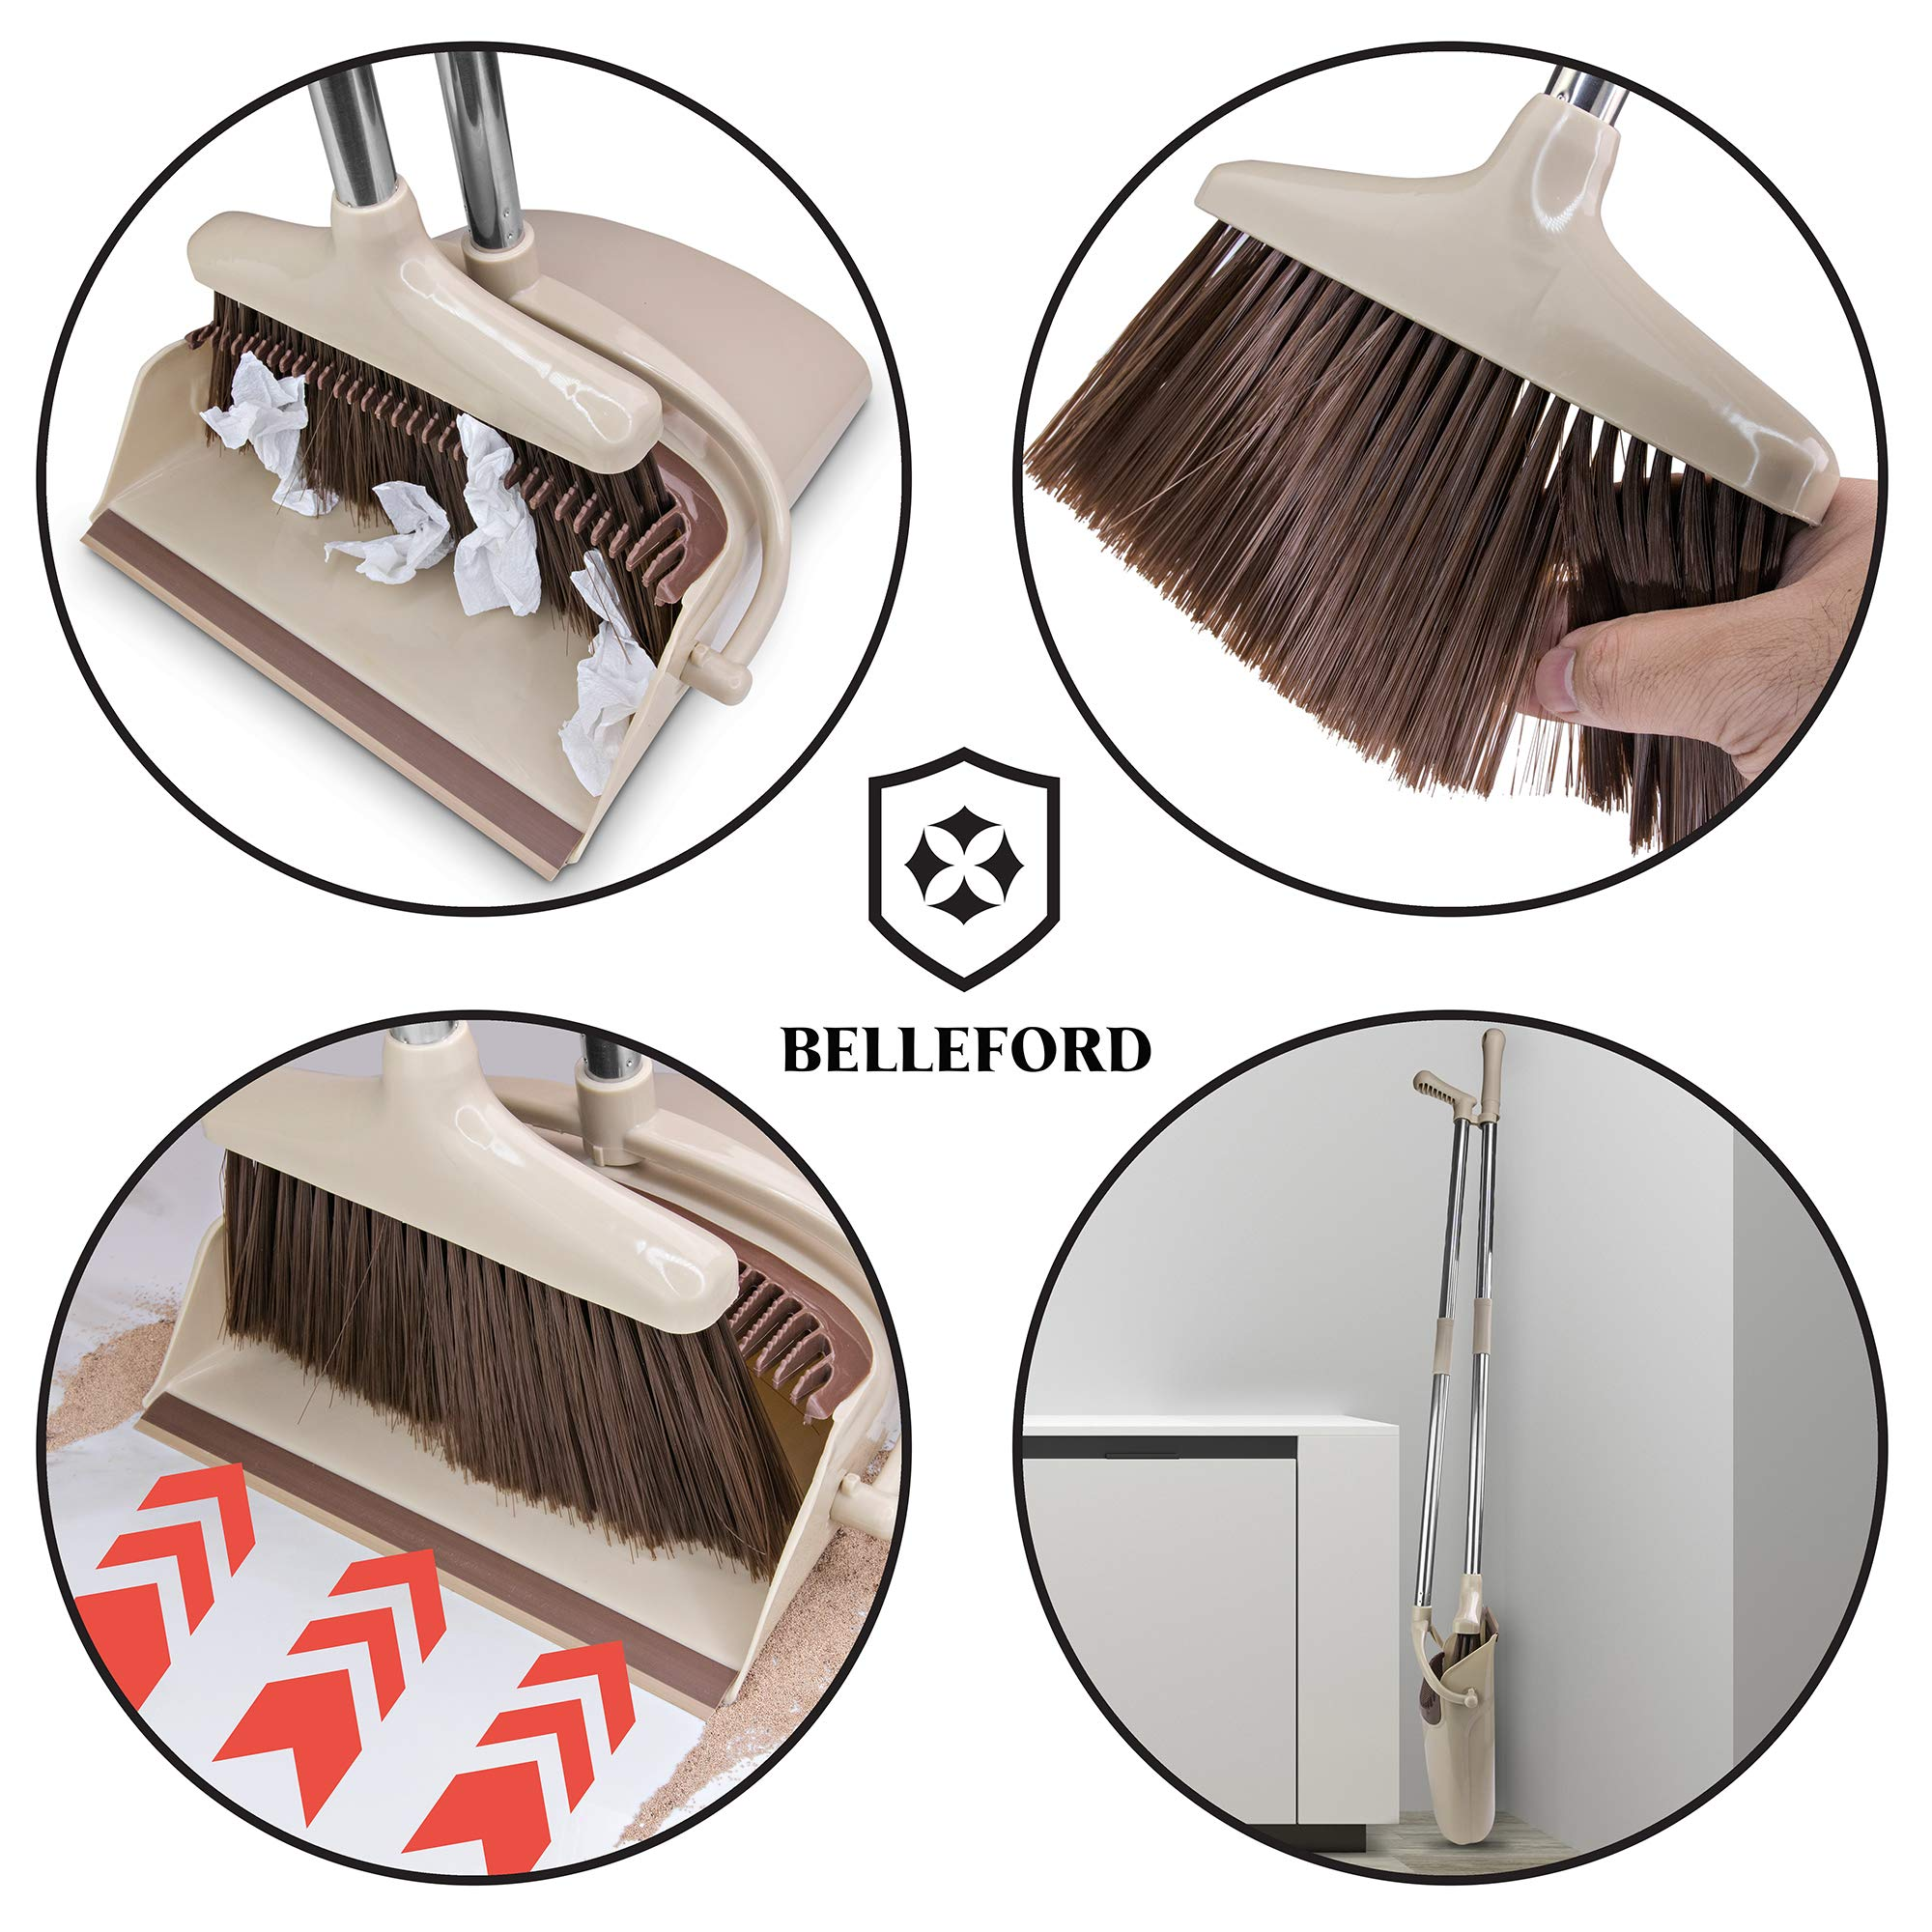 Broom and Dustpan Set [2019 Version] - Stand Up Brush and Dust Pan Combo for Upright Cleaning - Remove Hair with Built-in Wisp Scraper - Kitchen, Outdoor, Hardwood Floor & Garage Tiles Clean Supplies by Belleford (Image #3)